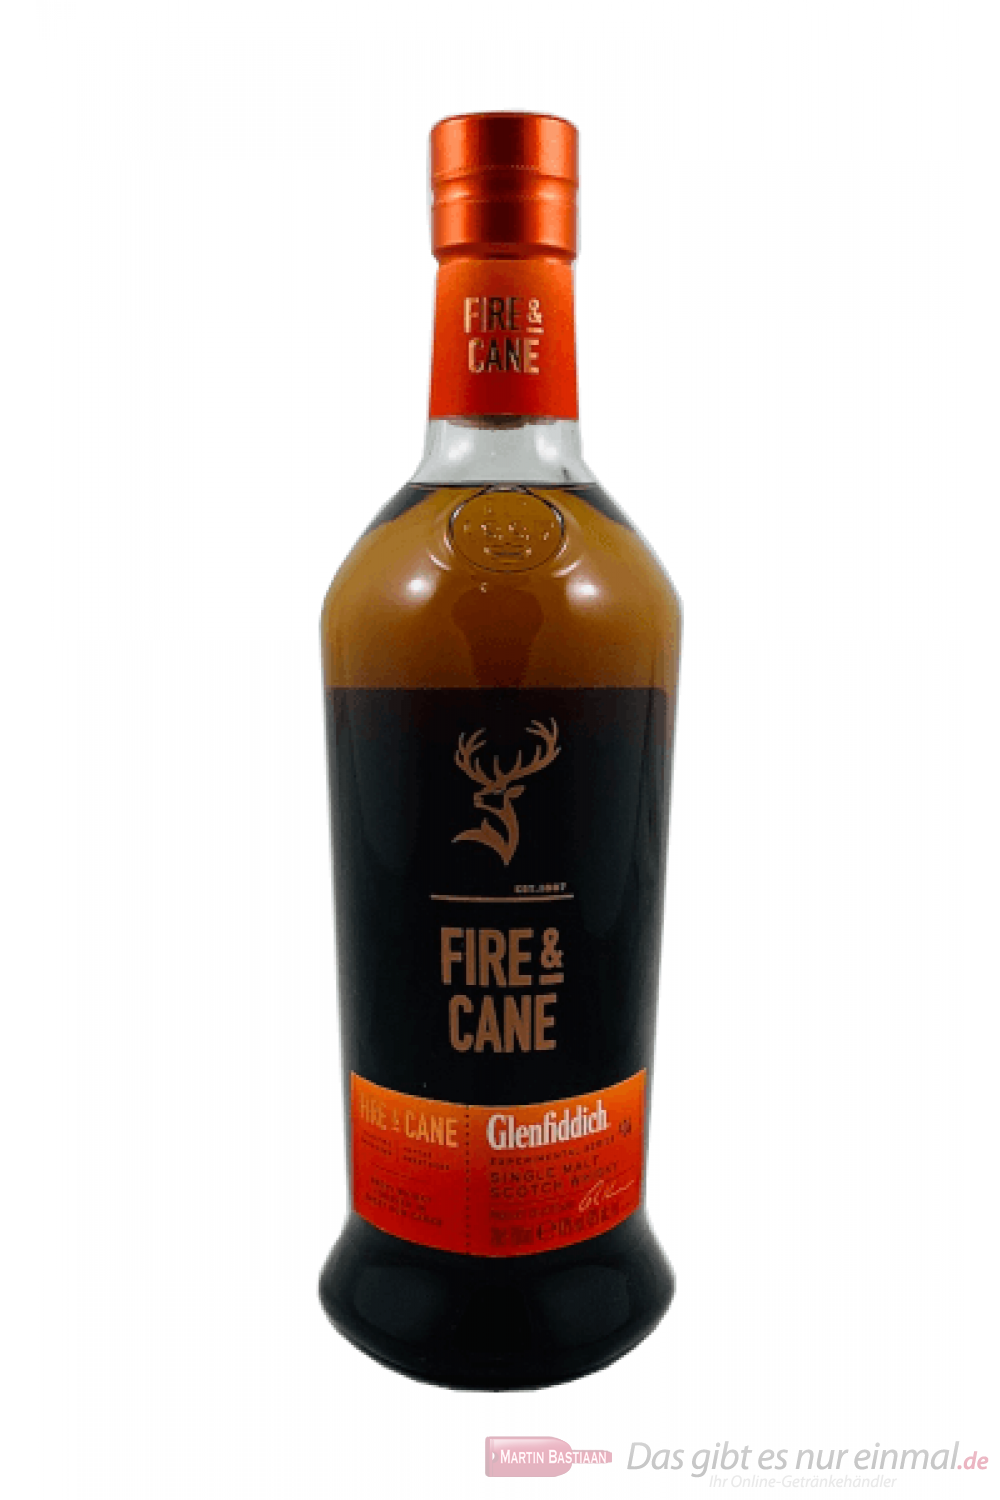 Glenfiddich Fire & Cane Single Malt Scotch Whisky 0,7l